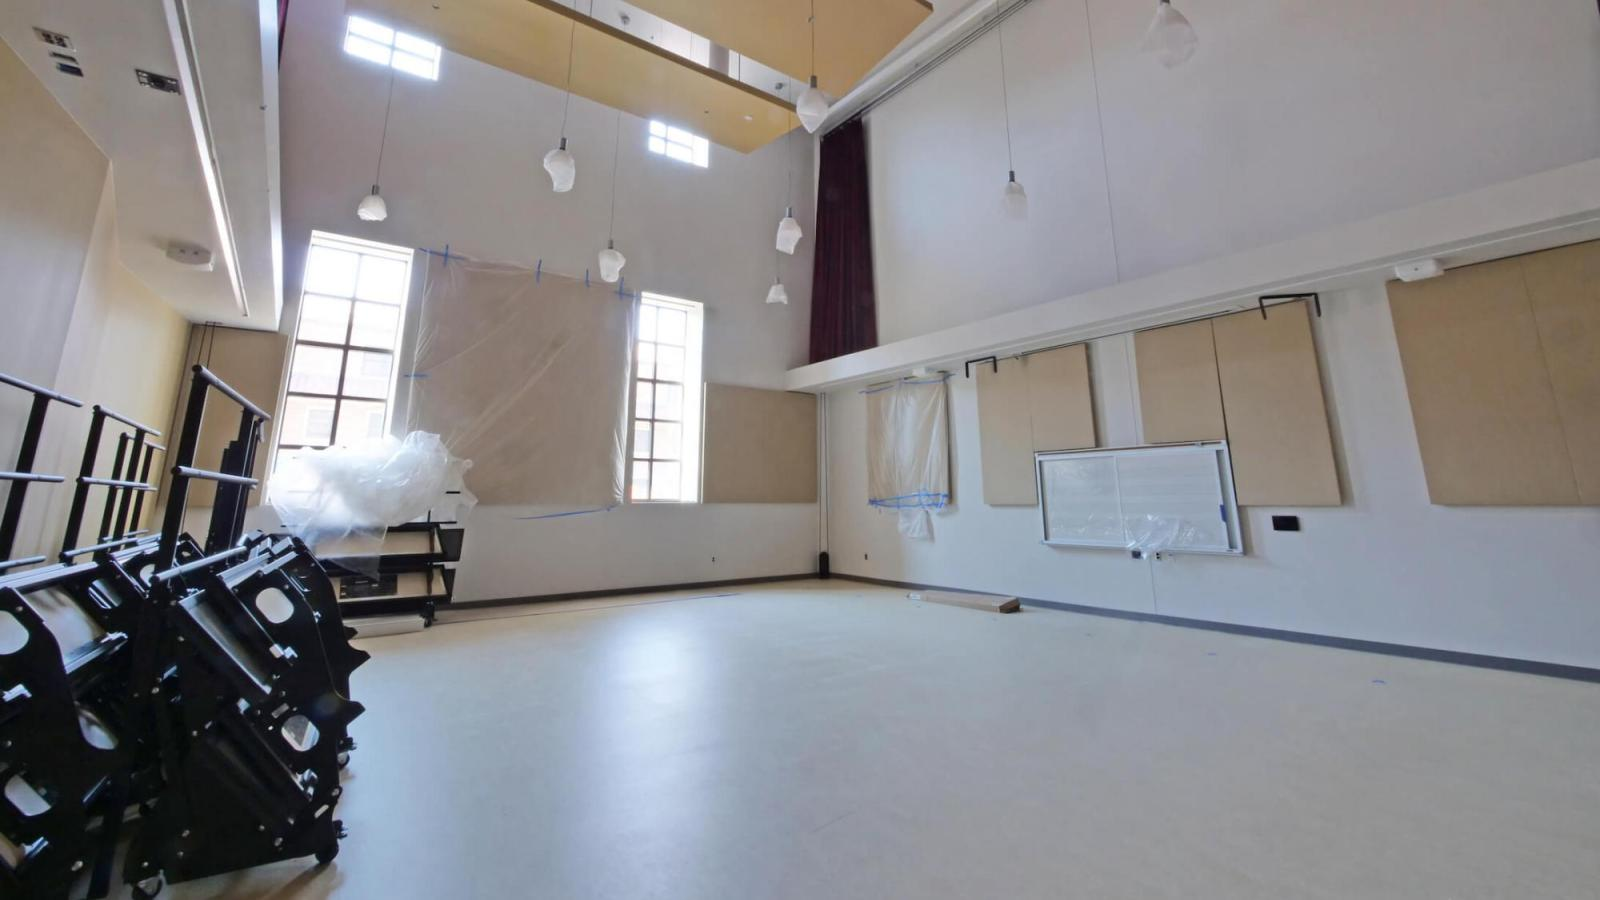 Interior rehearsal space